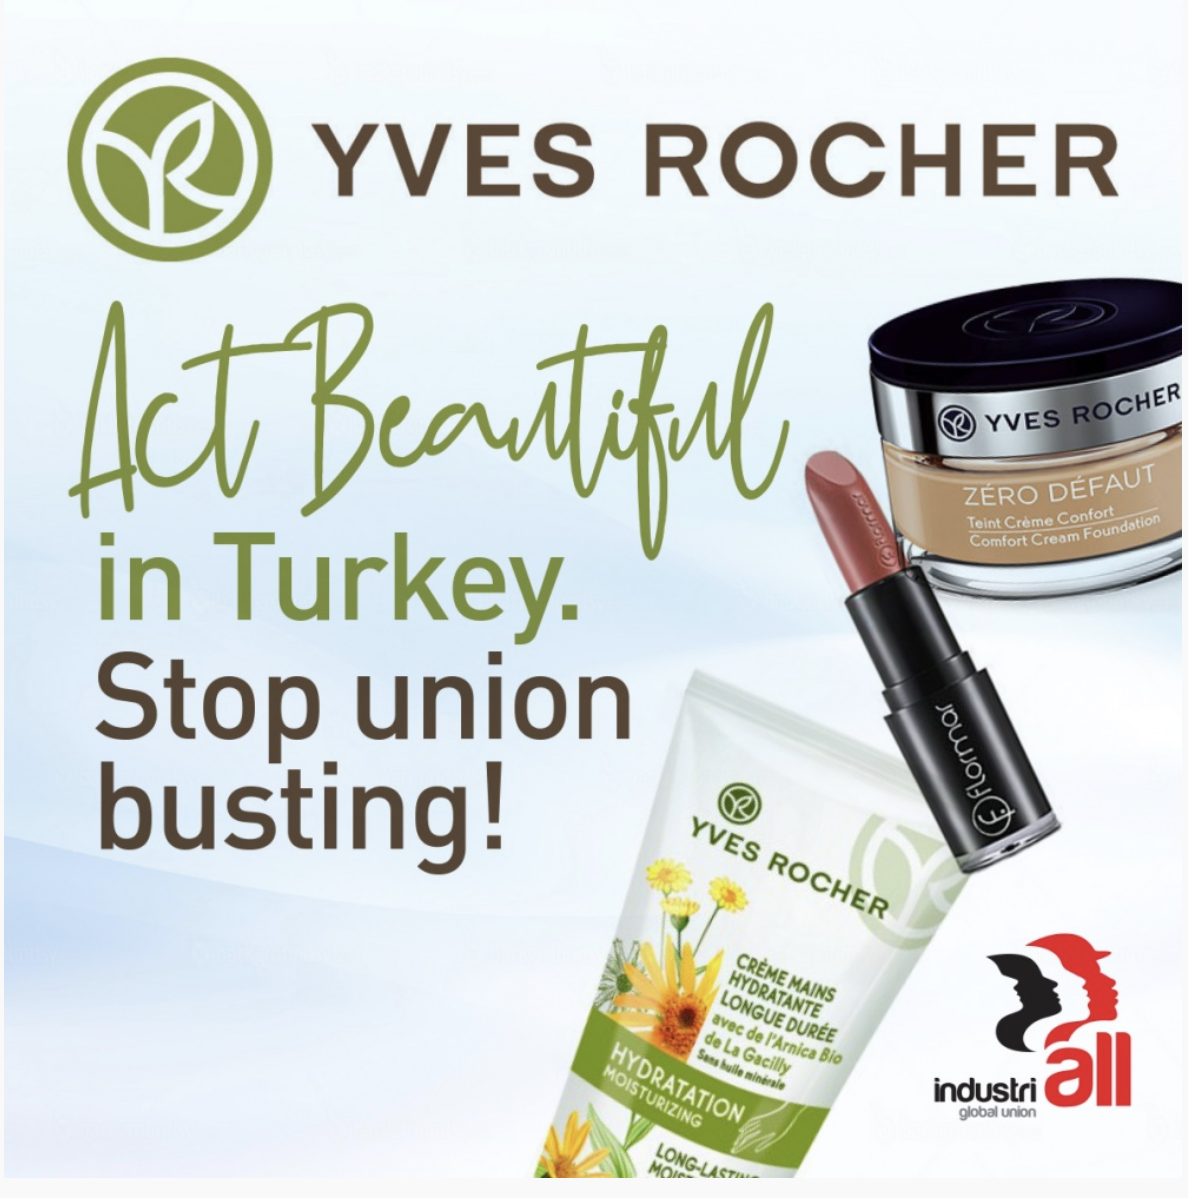 Yves Rocher: Stop union busting in Turkey!